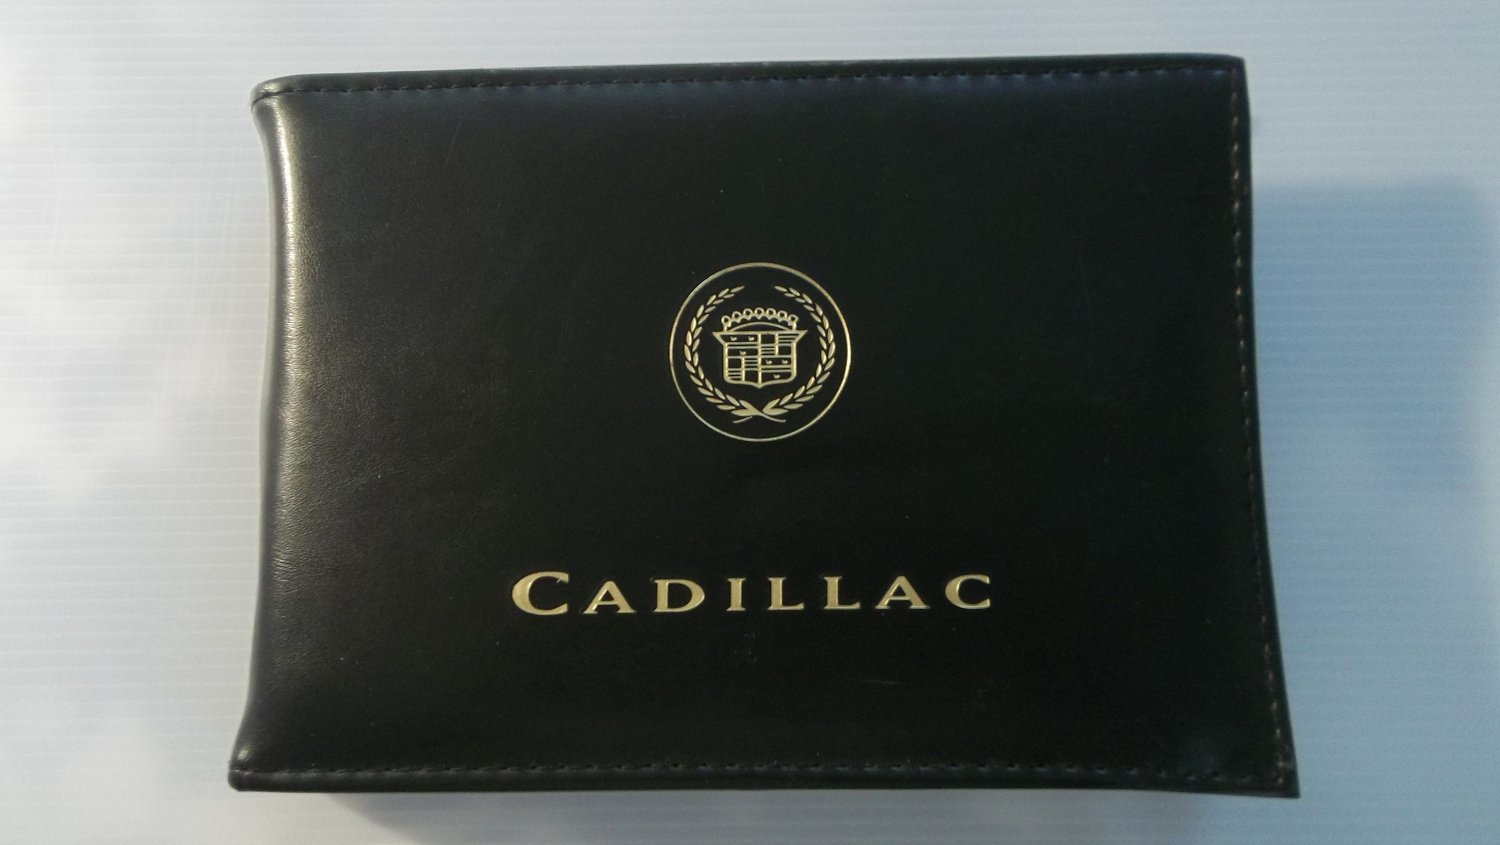 Genuine Cadillac Owner's Manual Holder